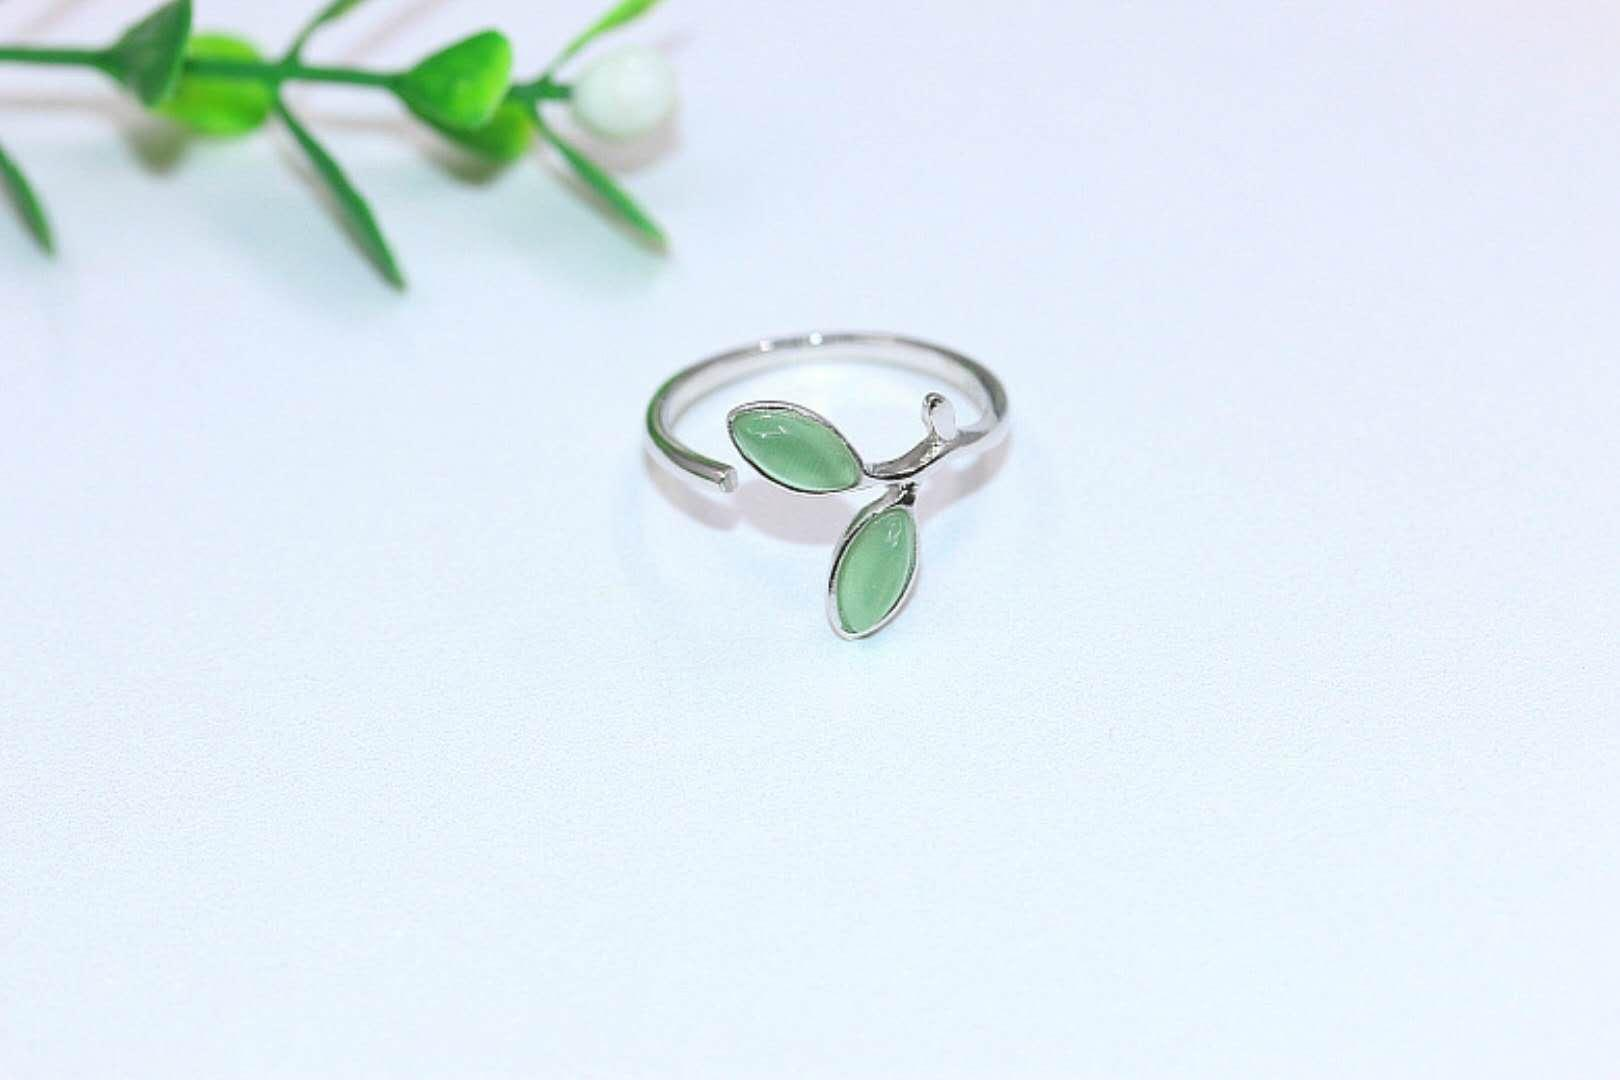 Green leaf Nature cat's eye ring new arrival Fashion pure silver 925 open ring Hot sale precious gemstone ring Top popular jewelry for lady